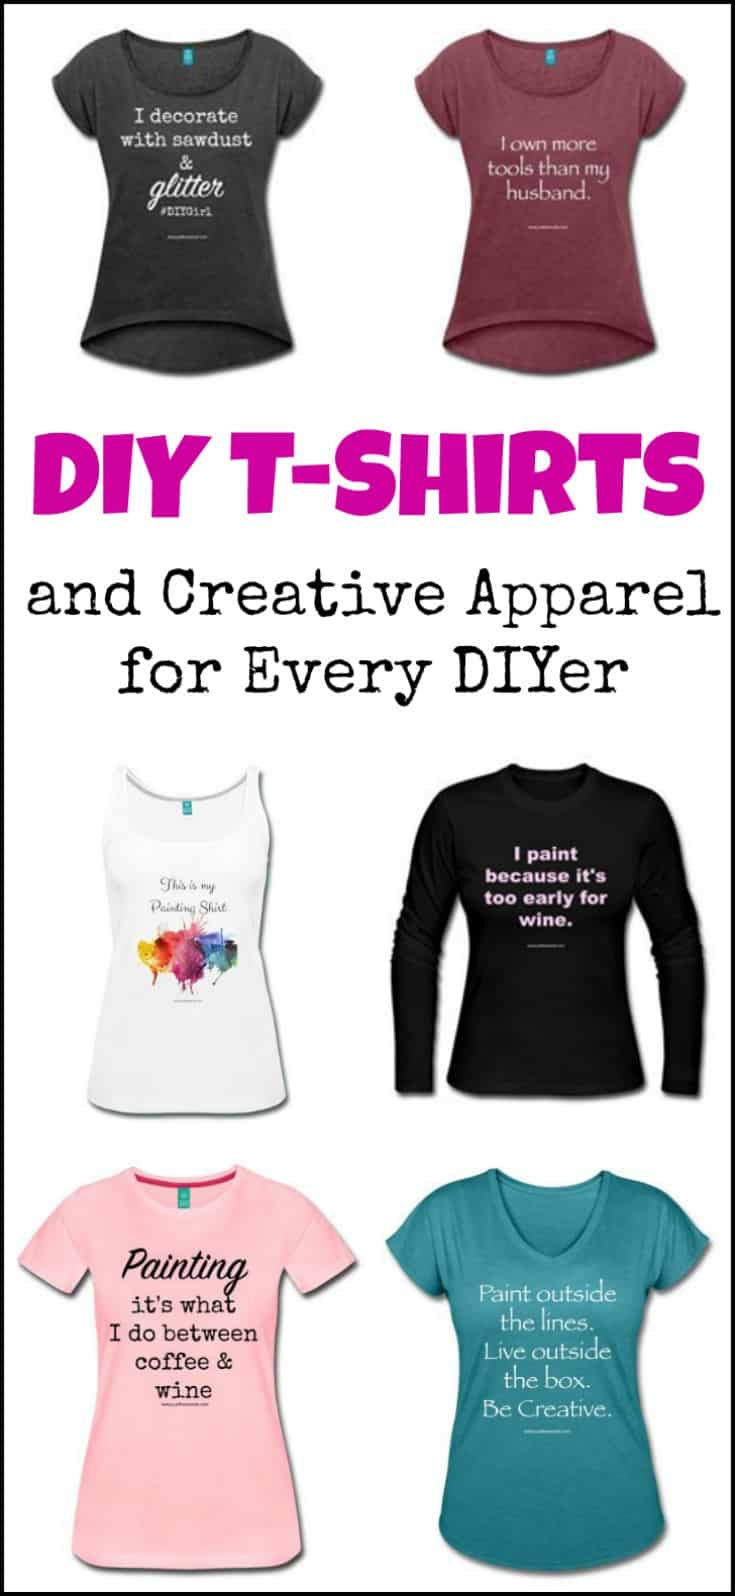 DIY T-Shirts, Sweatshirts and Creative Apparel for Every DIYer. Next time you are painting furniture, or working on your next DIY project make sure to do it in style wearing one of these creative DIY T-shirts. Many DIY shirt ideas, DIY Tshirts, DIY T-shirt designs, DIY cute shirts, DIY shirt.  #justthewoods